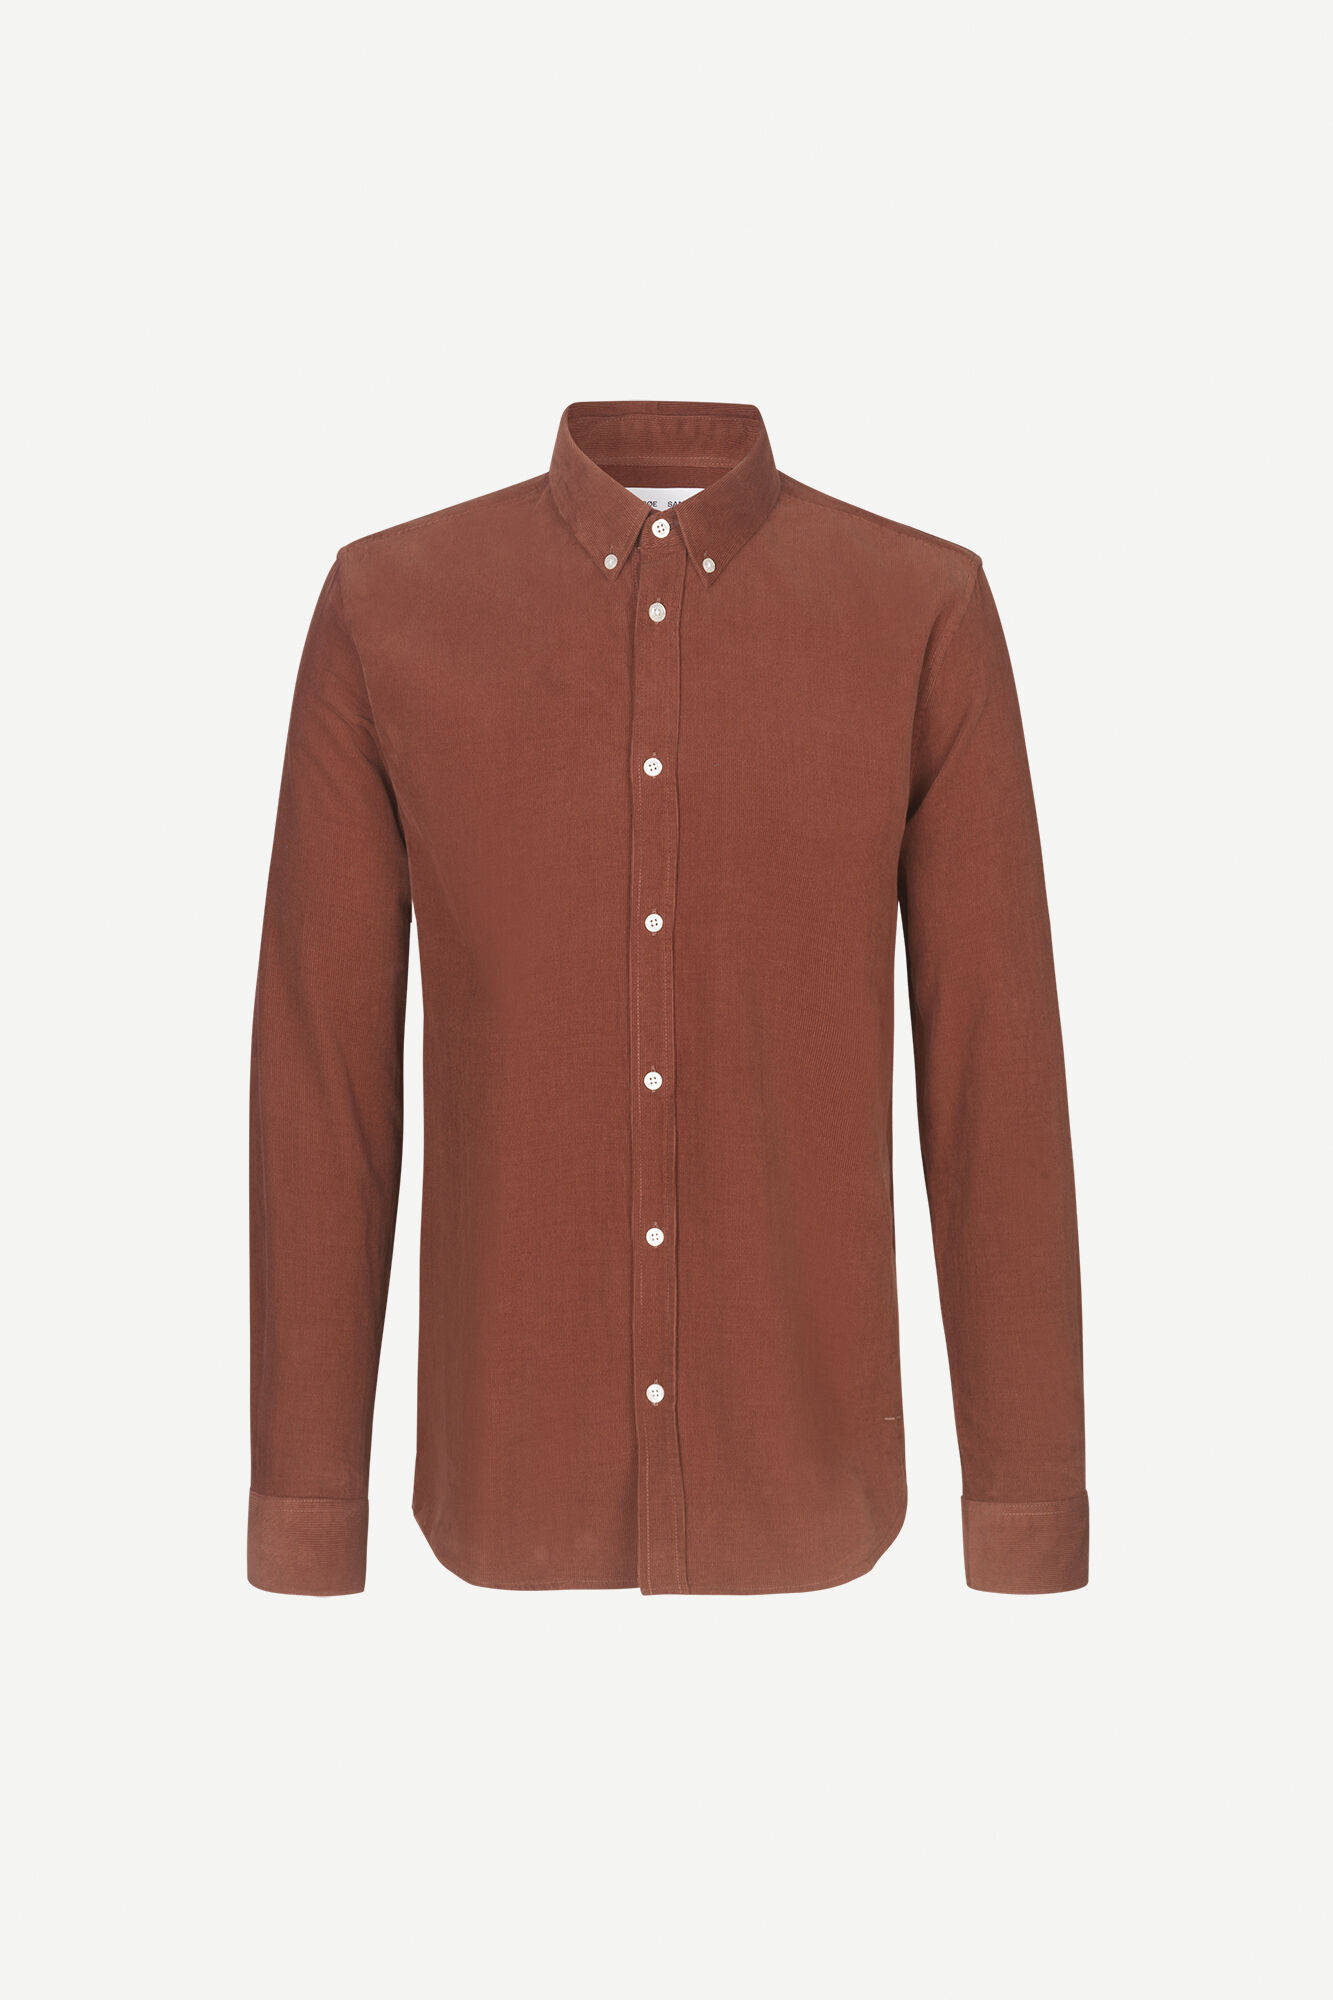 Liam BX Shirt Cinnamon Brown Corduroy 10504-1